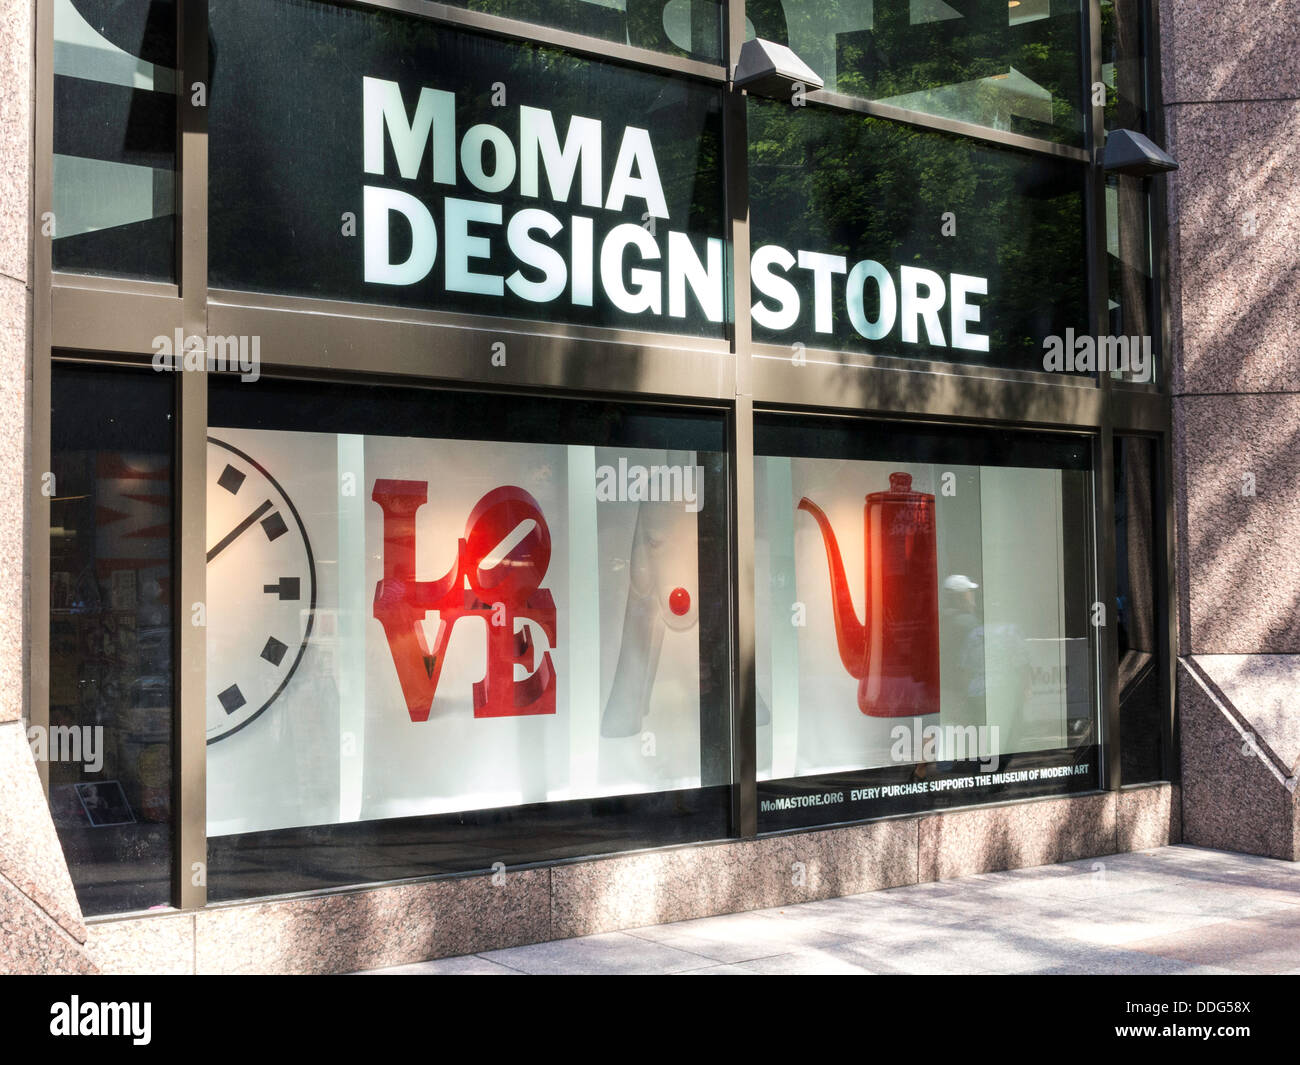 Moma Design Store Stock Photos & Moma Design Store Stock Images - Alamy